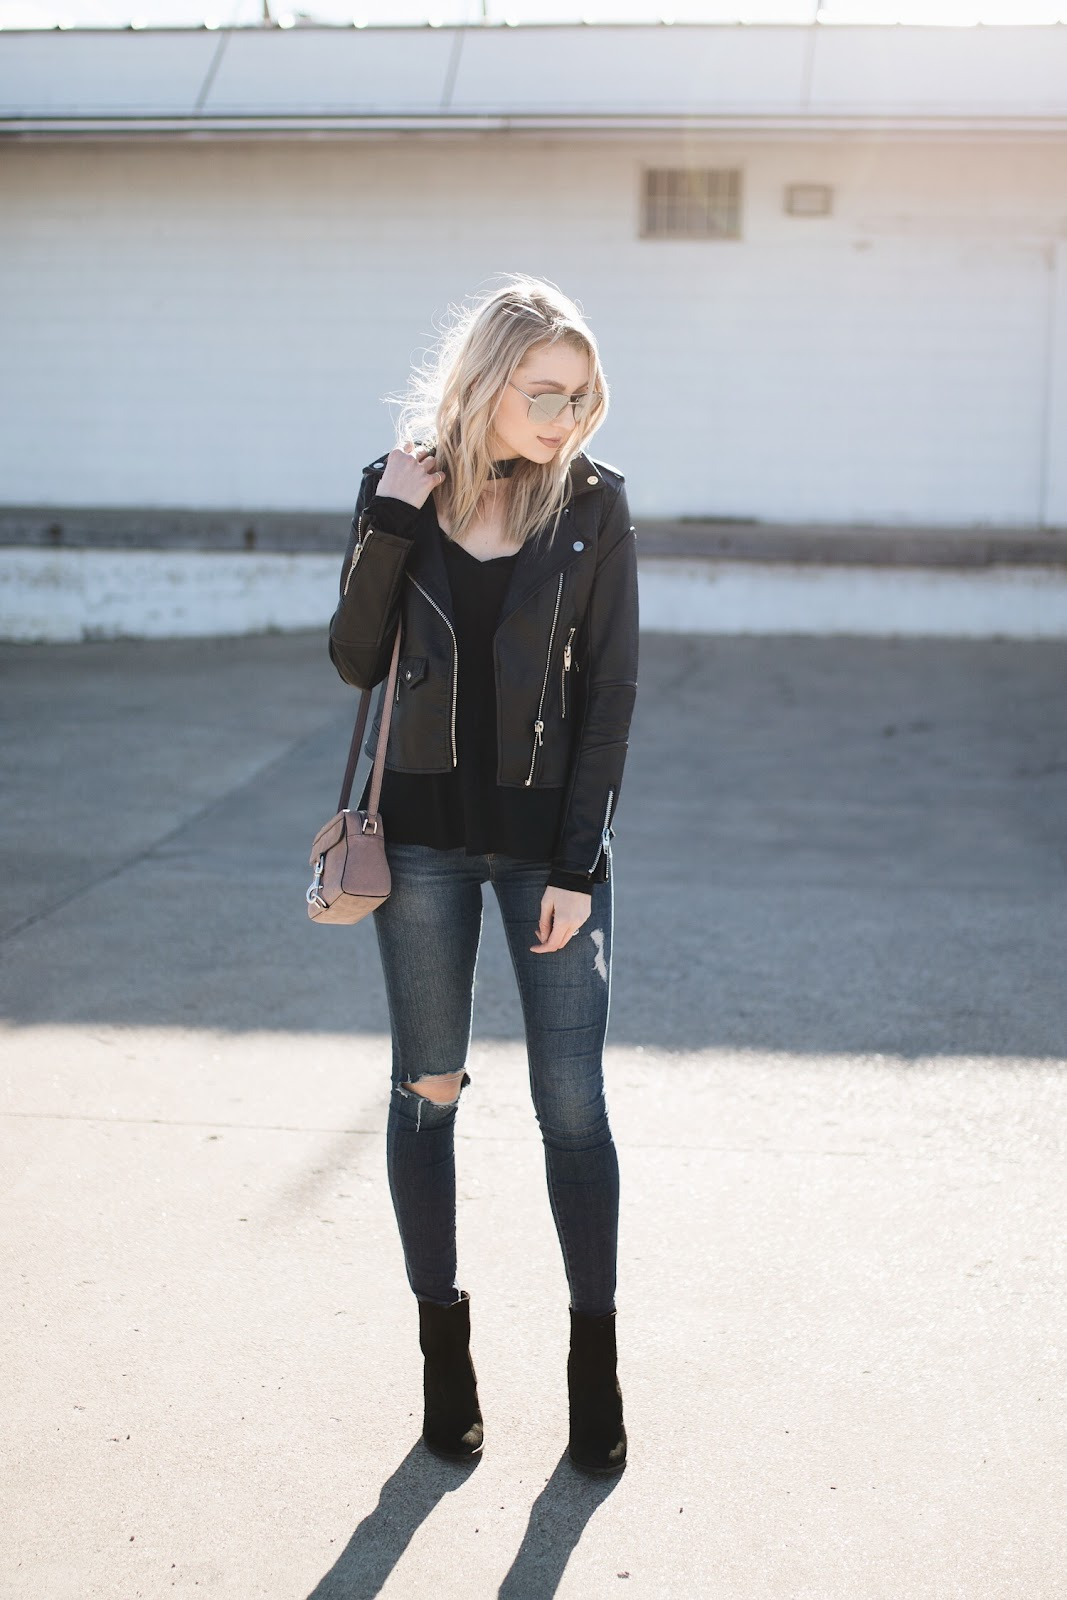 Faux leather jacket, ripped jeans, ankle boots